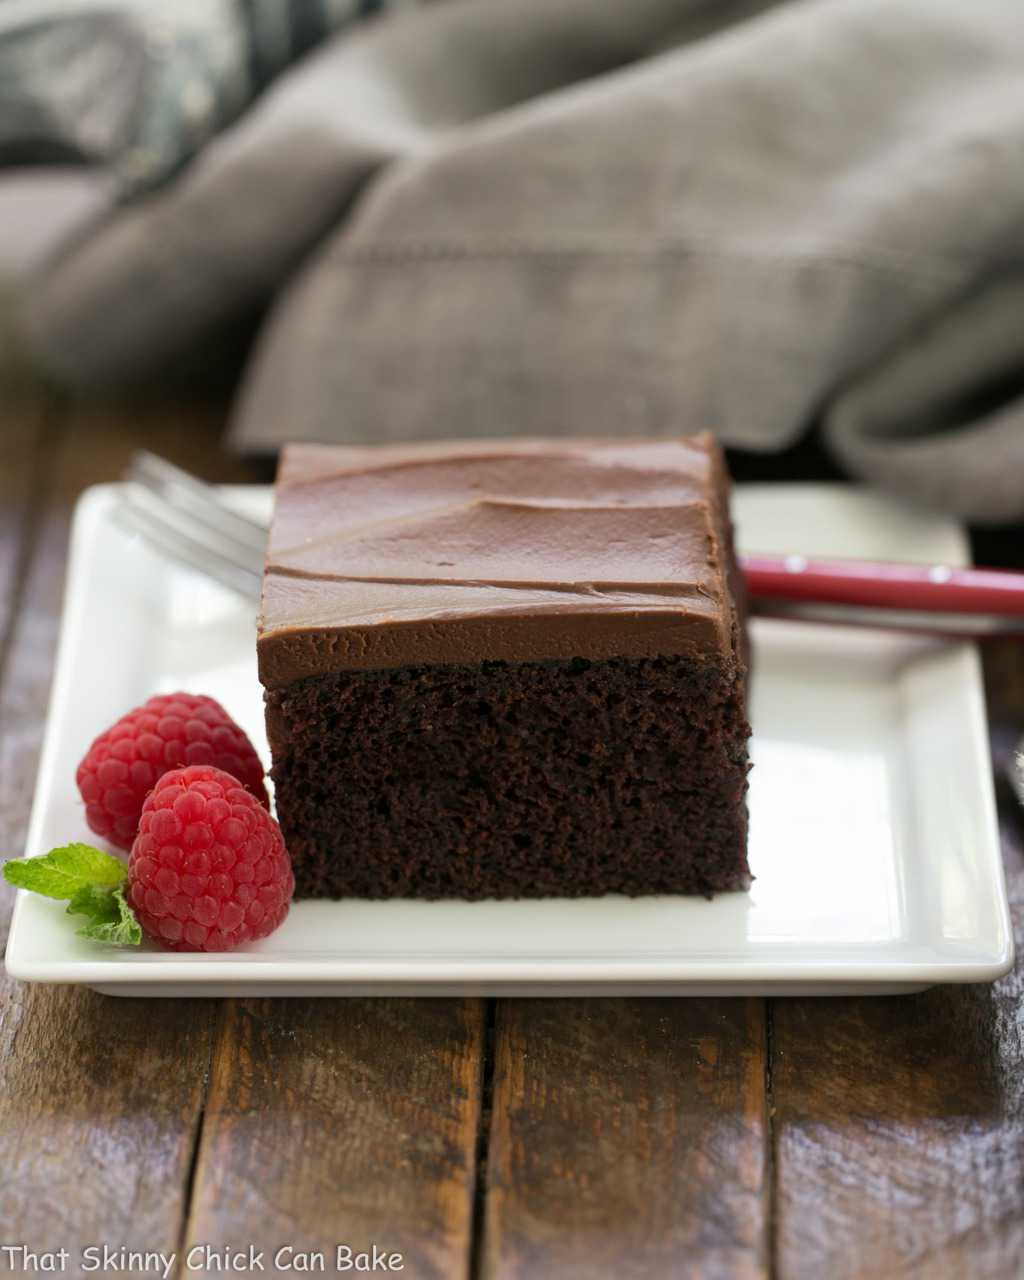 Black Magic Snack Cake - an old fashioned chocolate buttermilk cake with chocolate buttercream